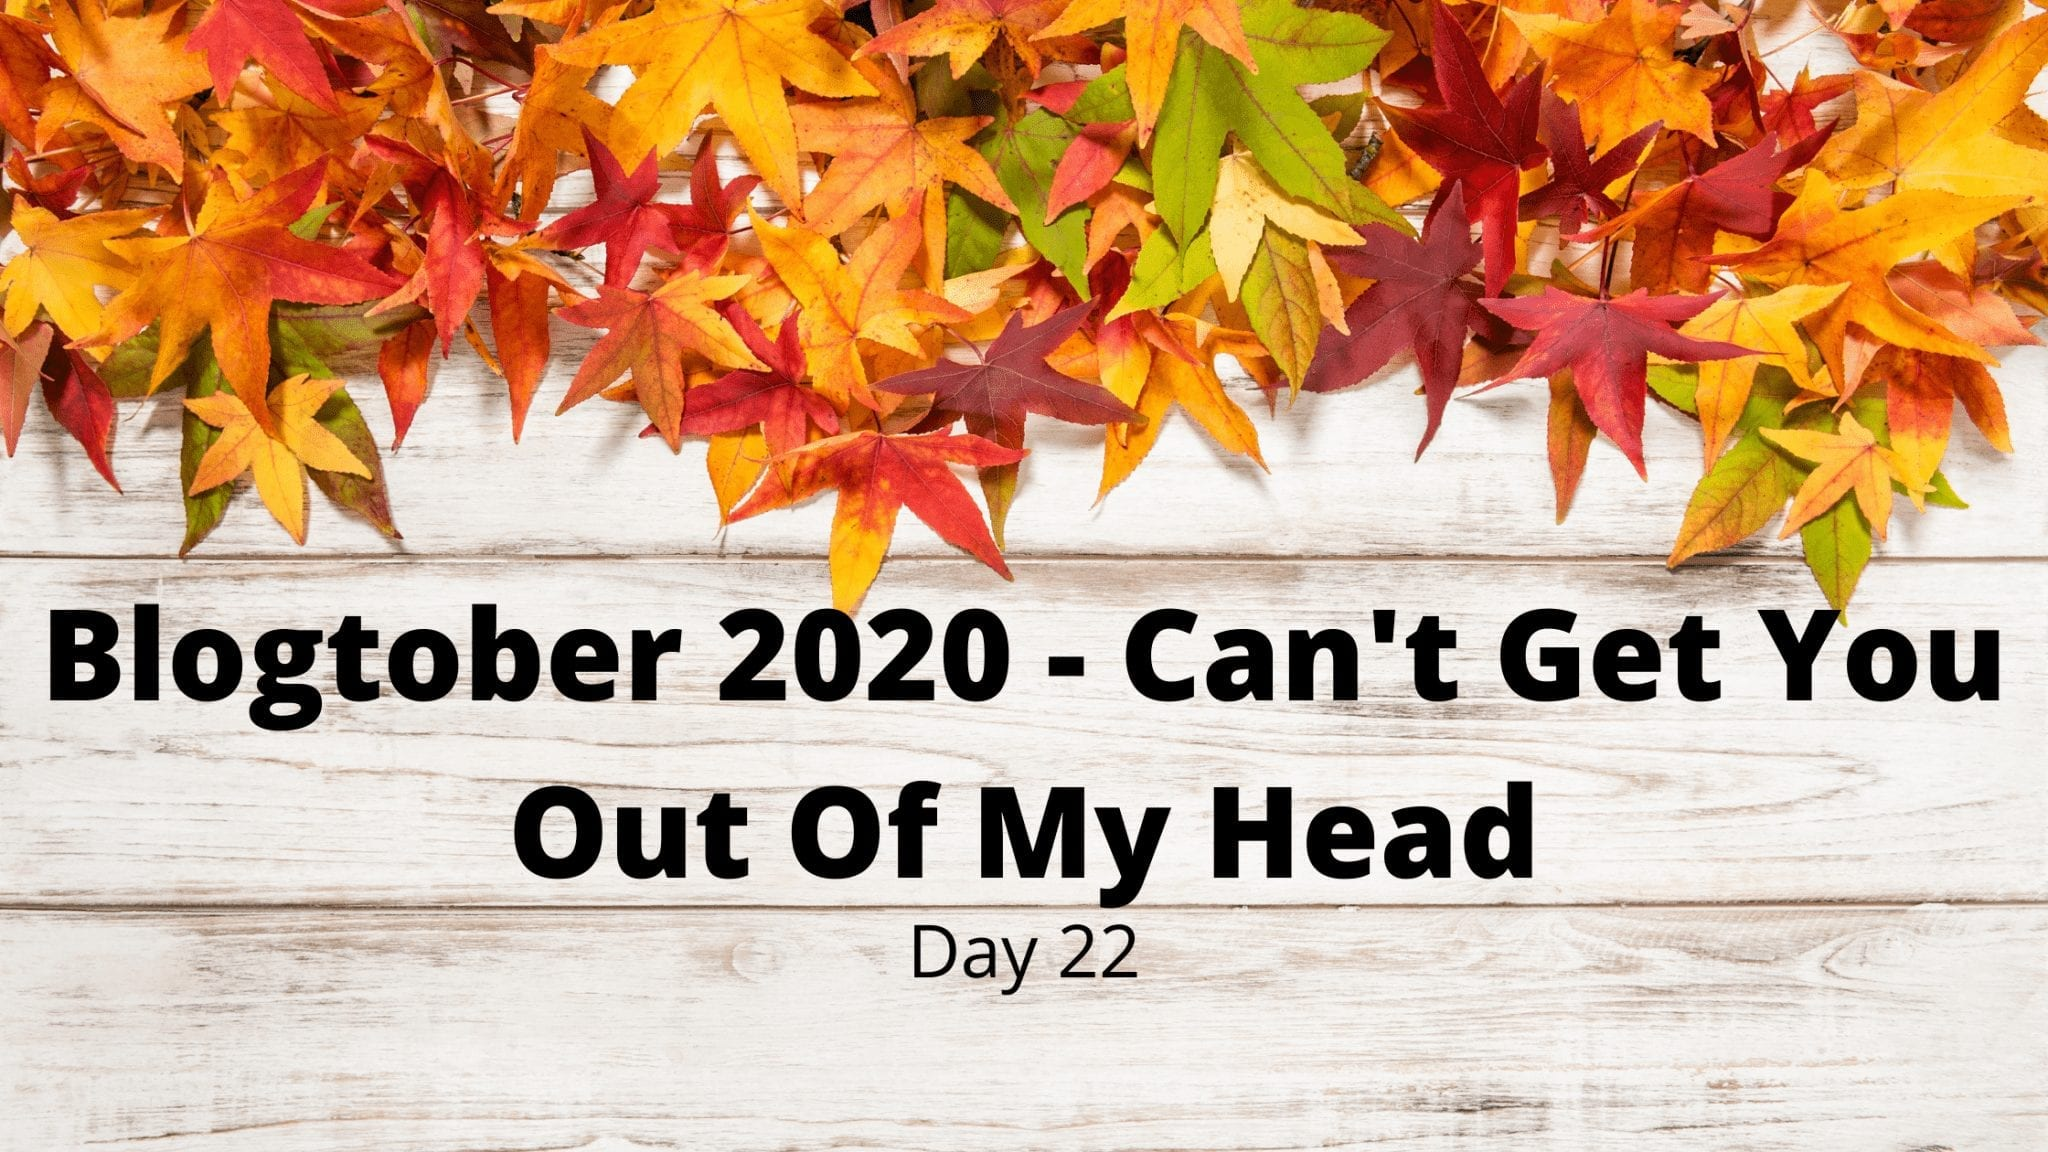 Blogtober 2020 - Can't Get You Out Of My Head